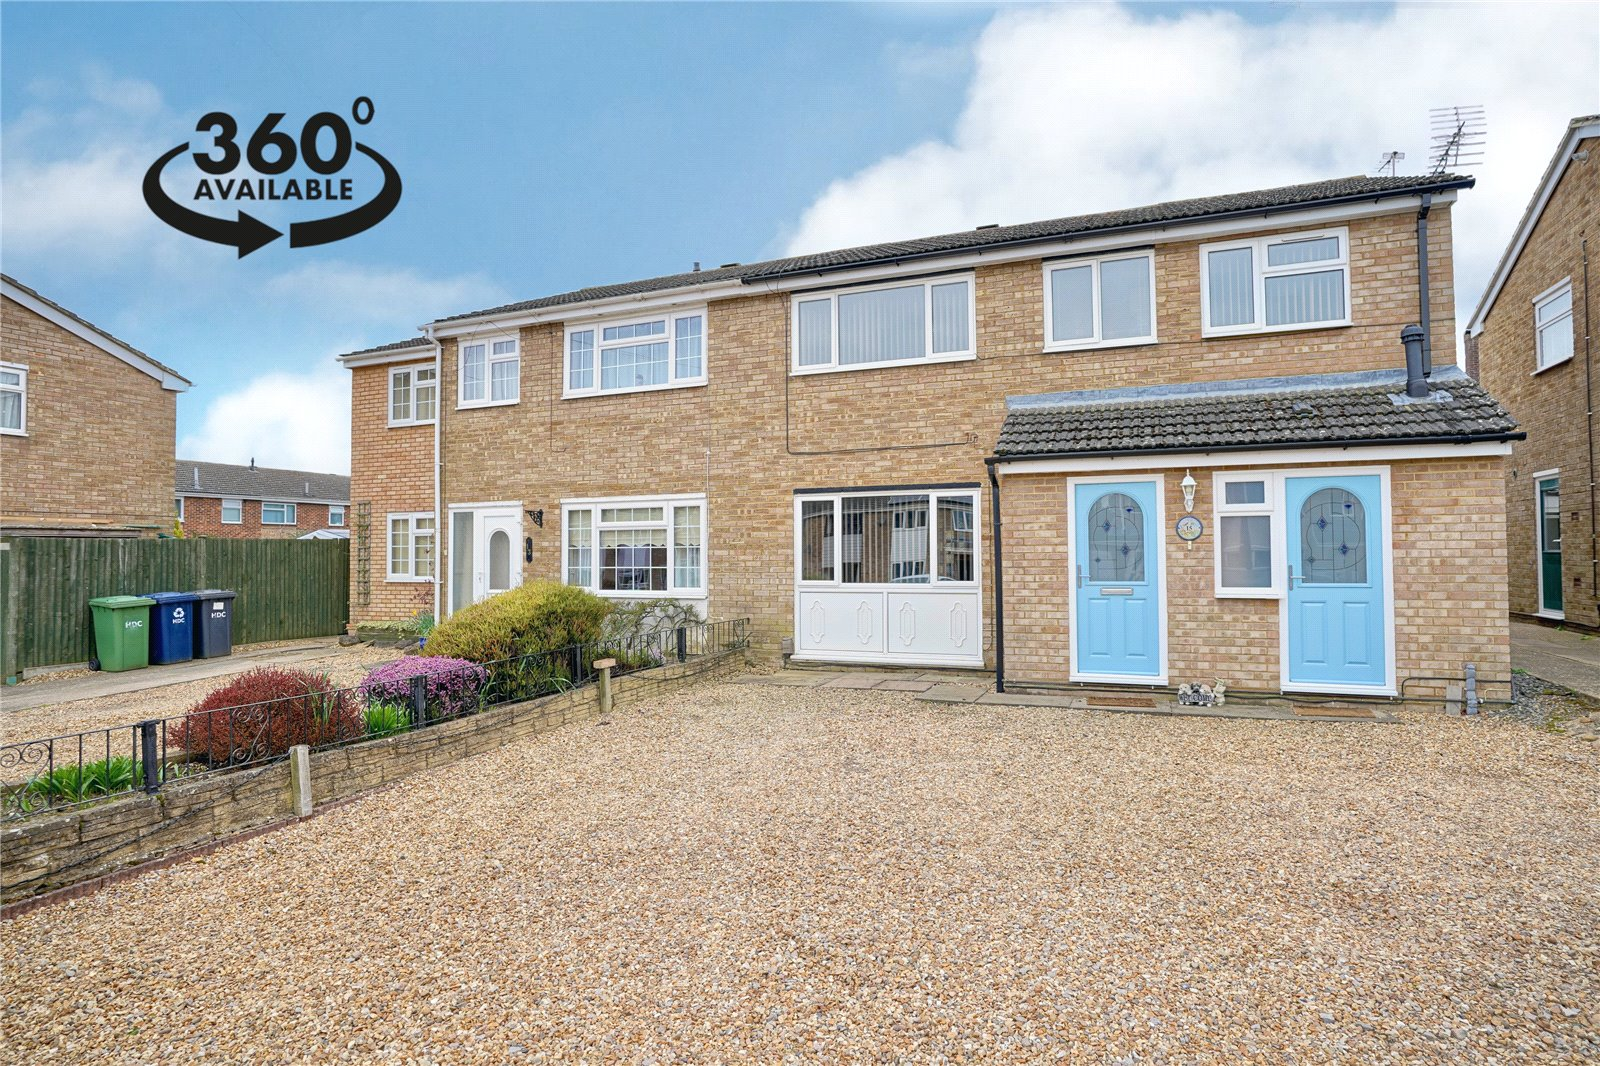 4 bed house for sale in Kenilworth Close, Eaton Socon, PE19